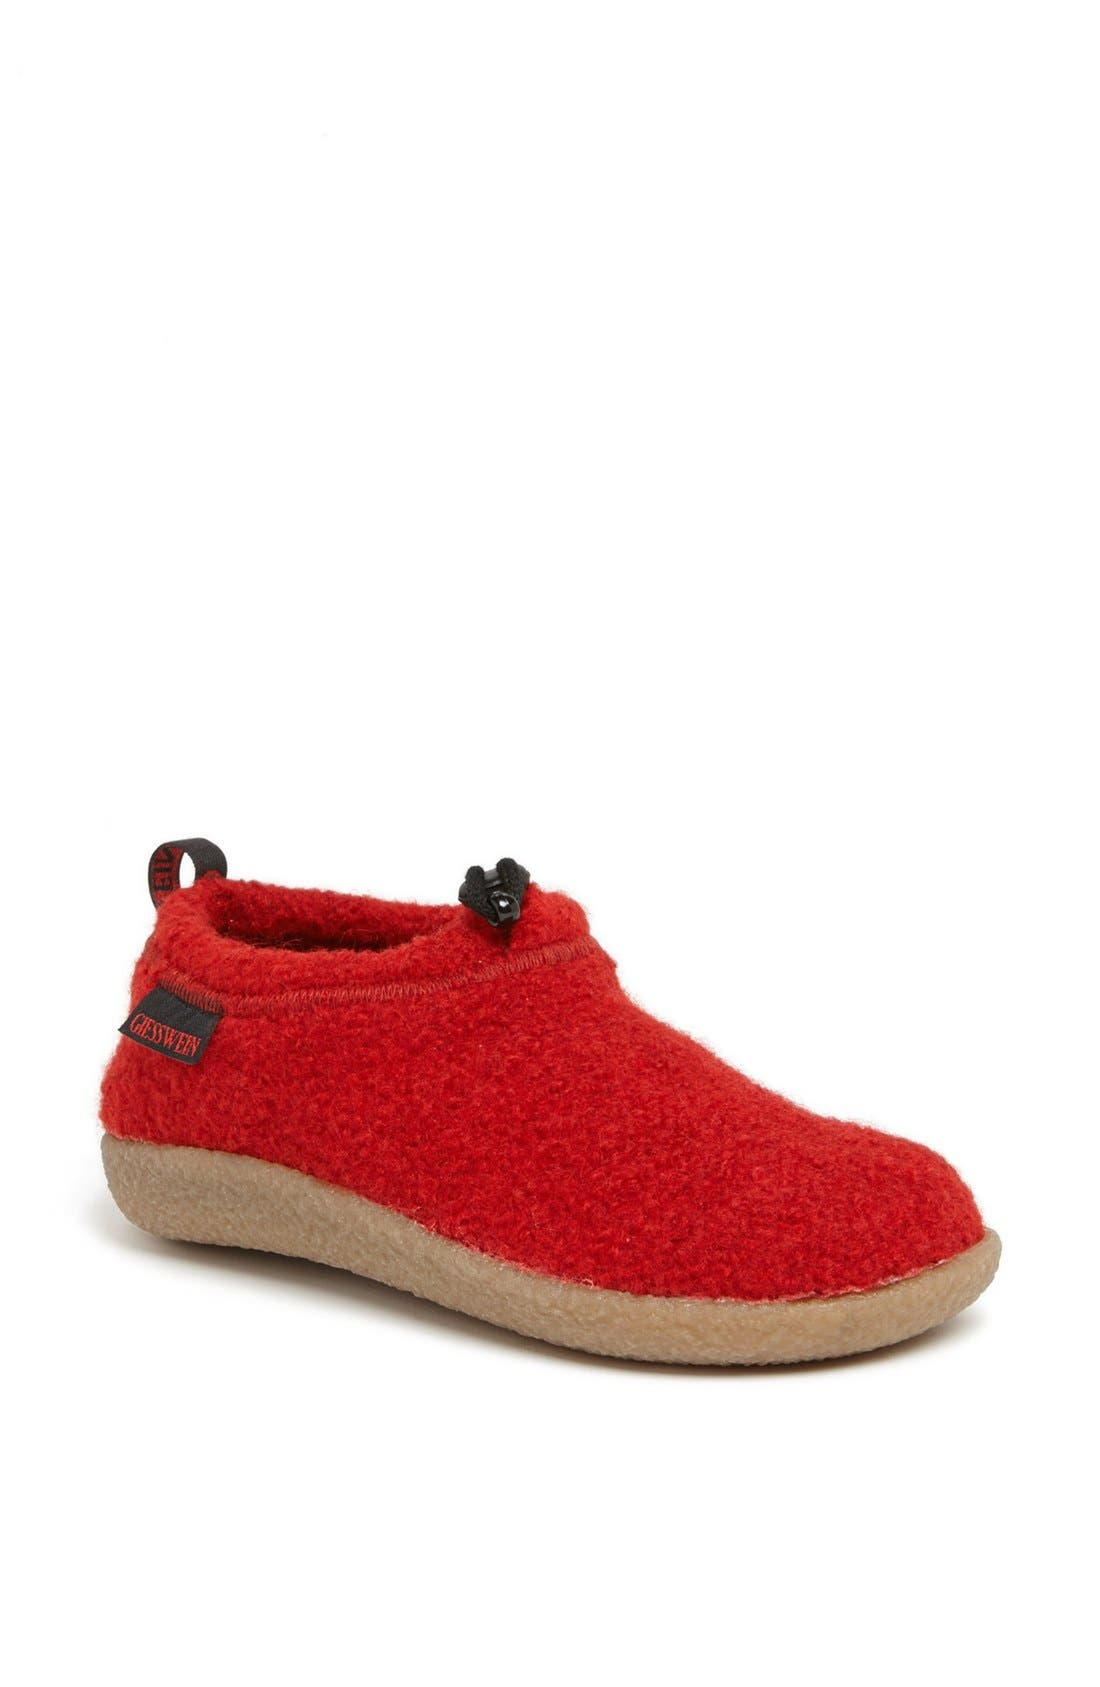 Giesswein 'Vent Lodge' Slipper